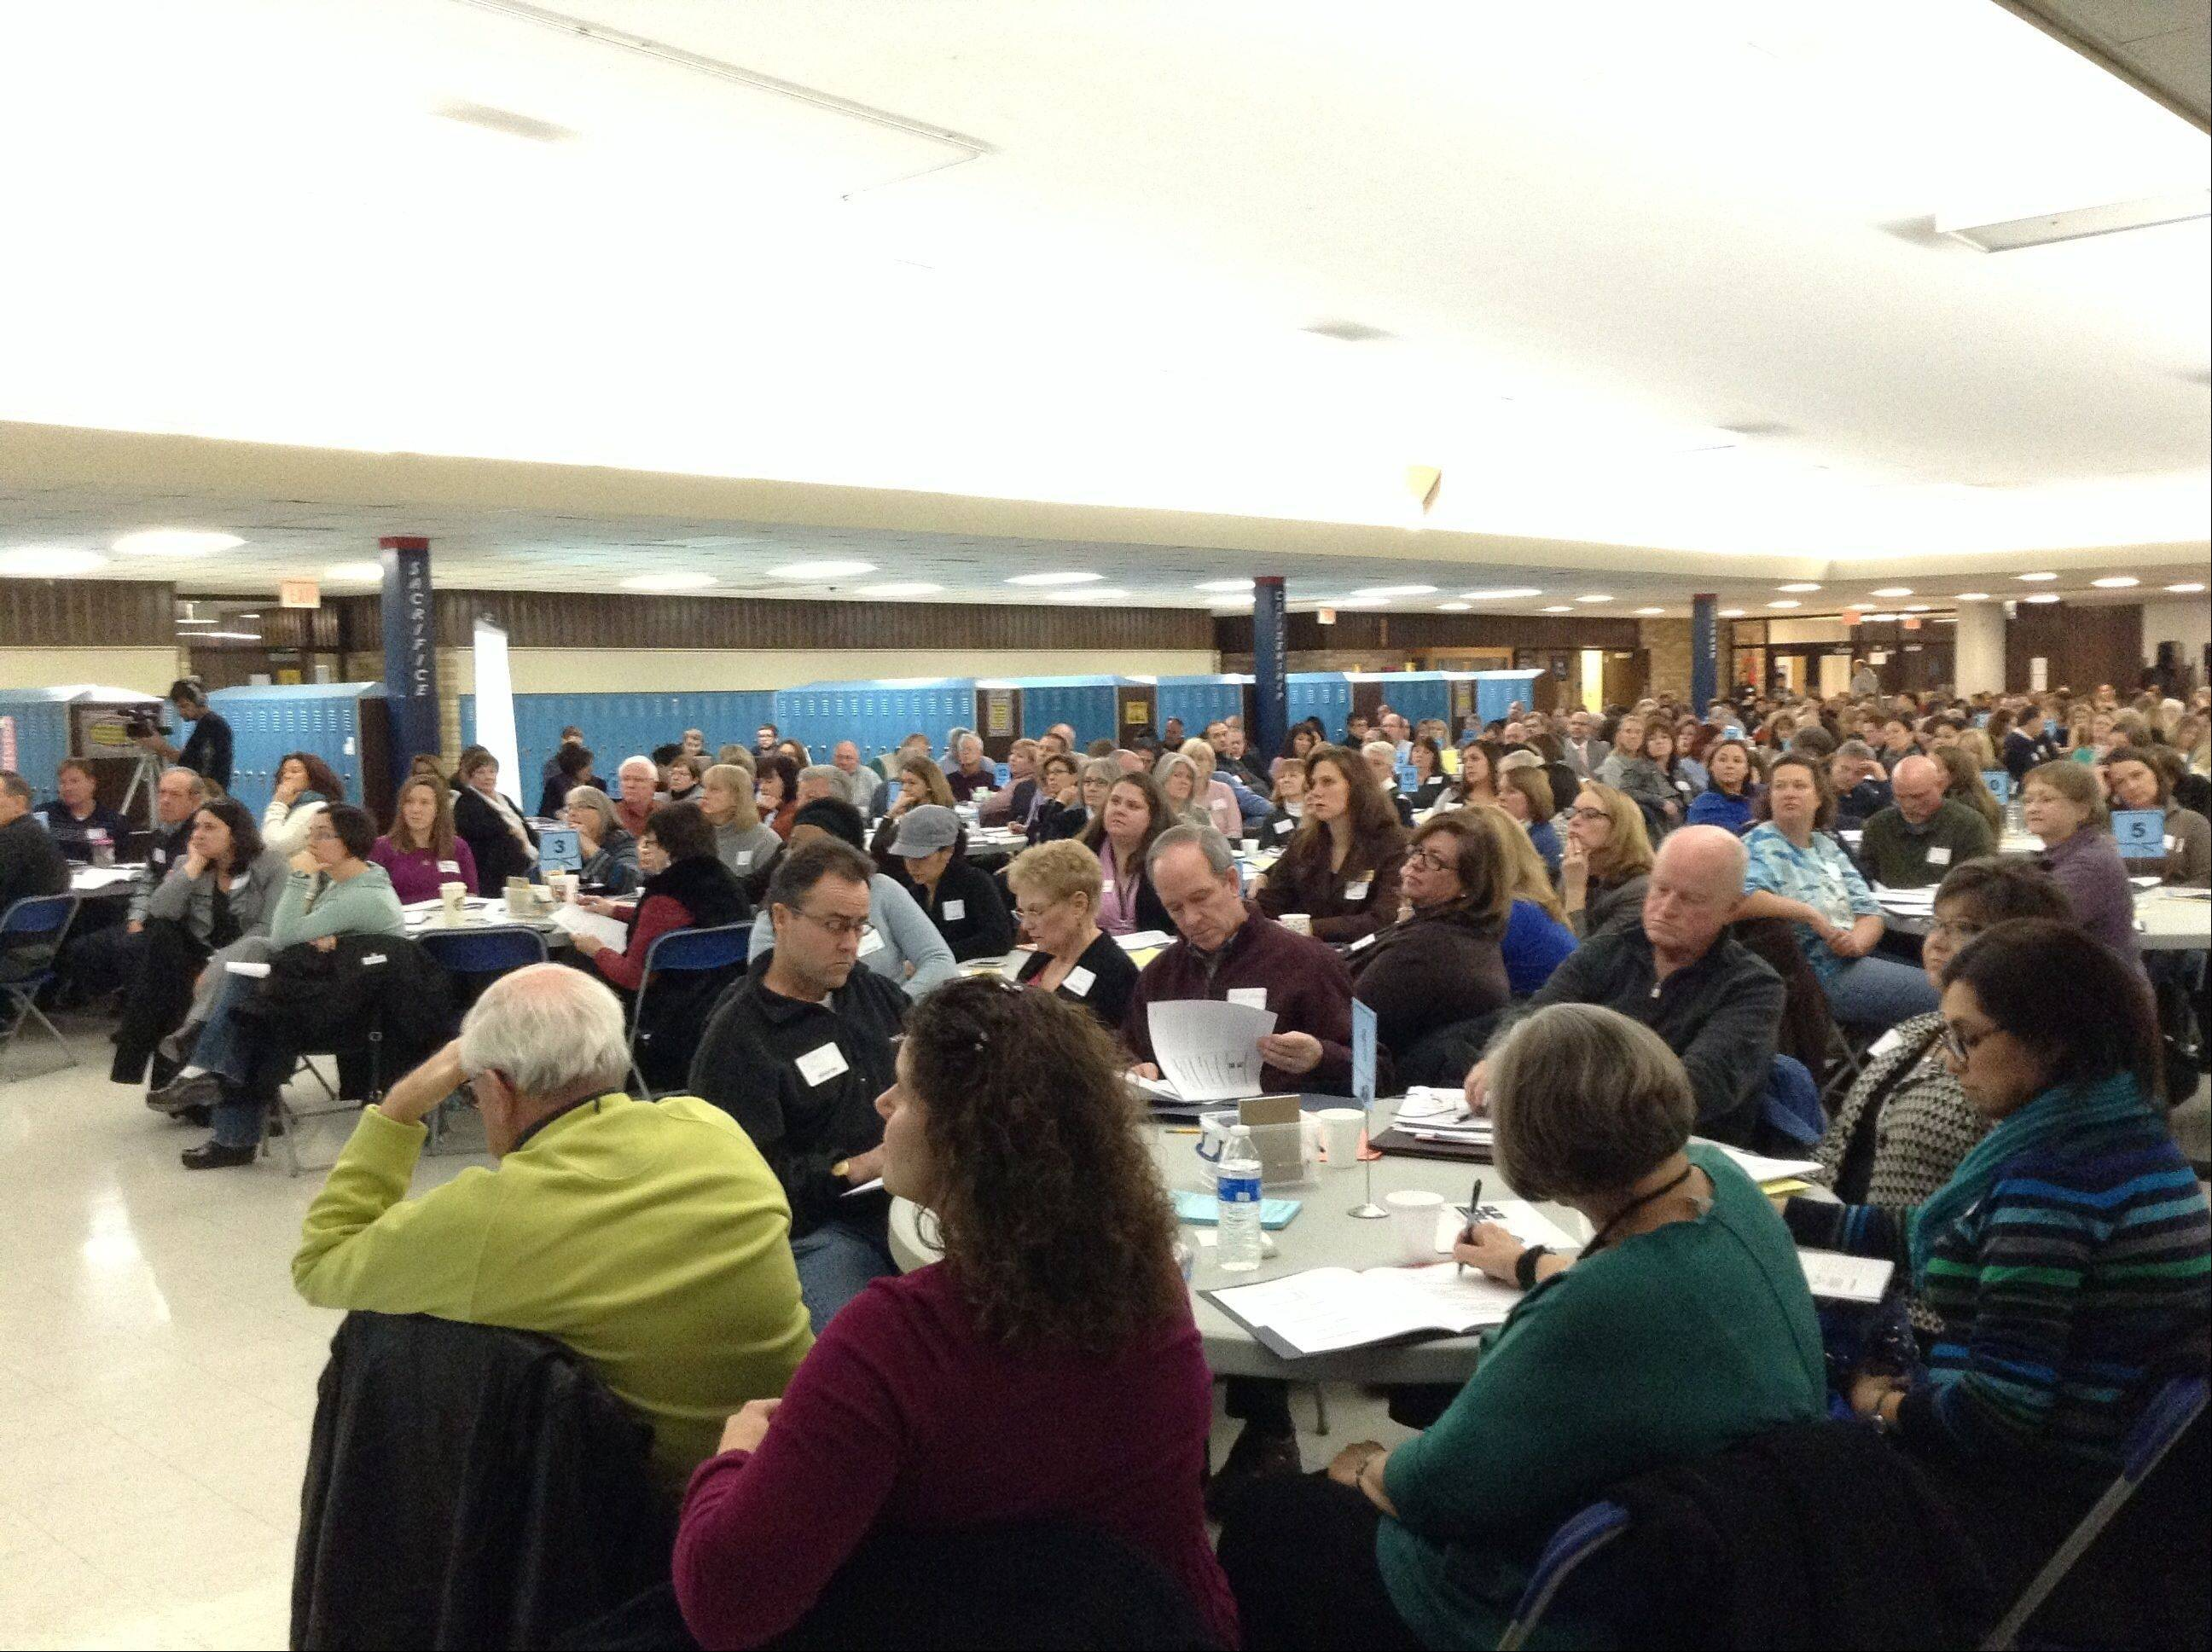 More than 400 people attended Wheaton Warrenville District 200's first Engage200 community engagement session on Wednesday at Monroe Middle School in Wheaton.